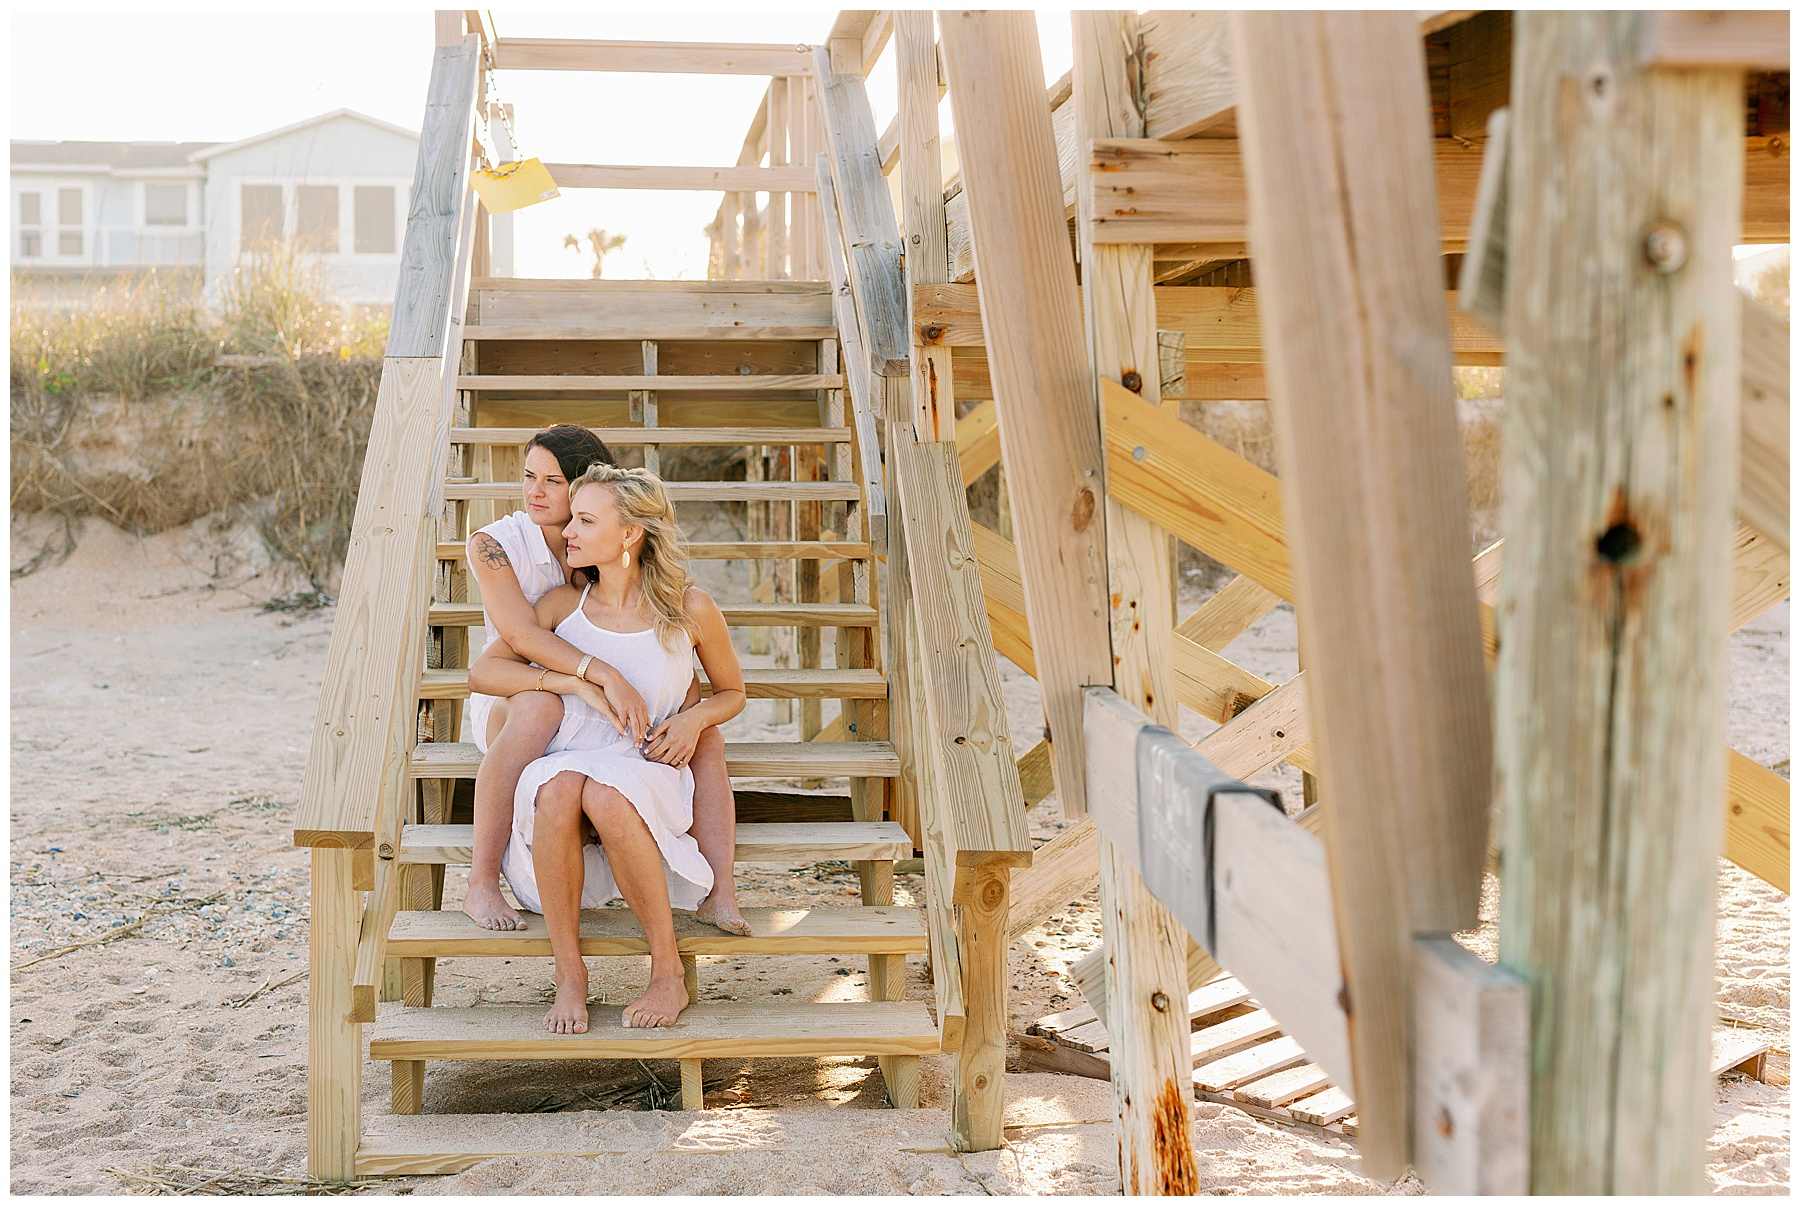 Same sex female couple embrace on the stairs at the beach bridge